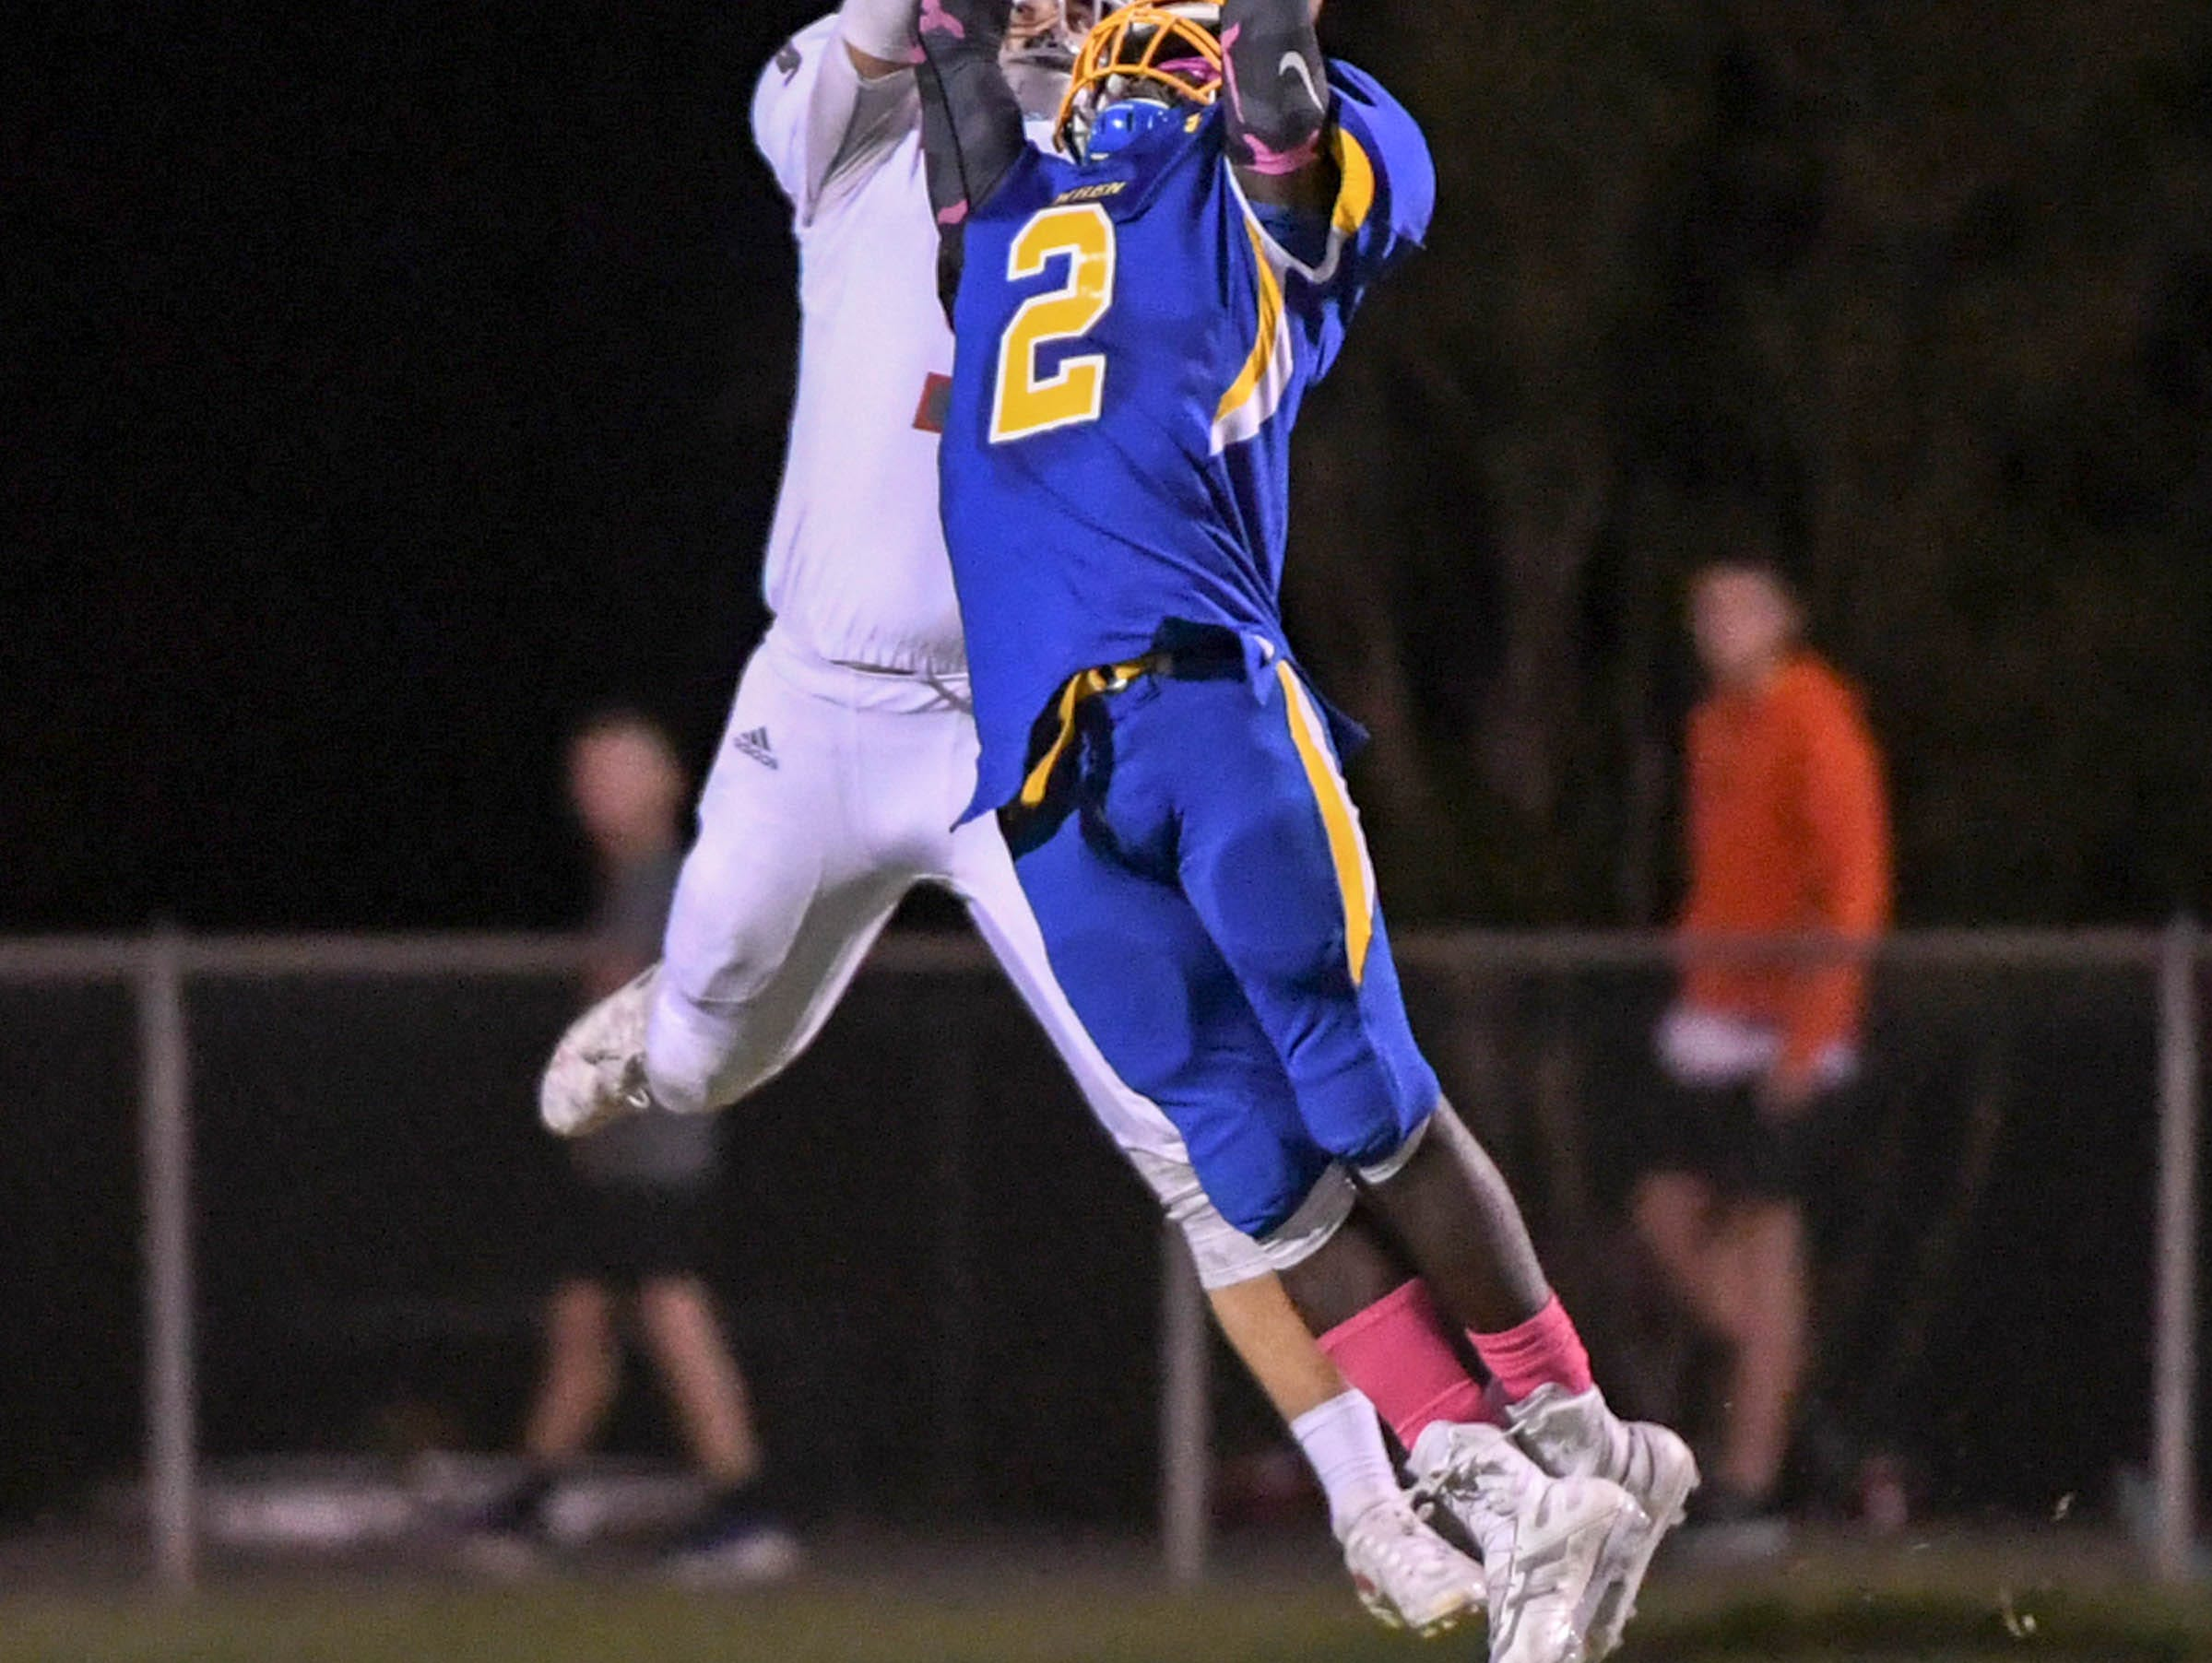 Palmetto junior Blakely Williams catches a long pass from quarterback Blair Garner over Wren junior Dez Frazier (2) for a touchdown during the first quarter at Wren High School in Piedmont on Friday, October 12, 2018.